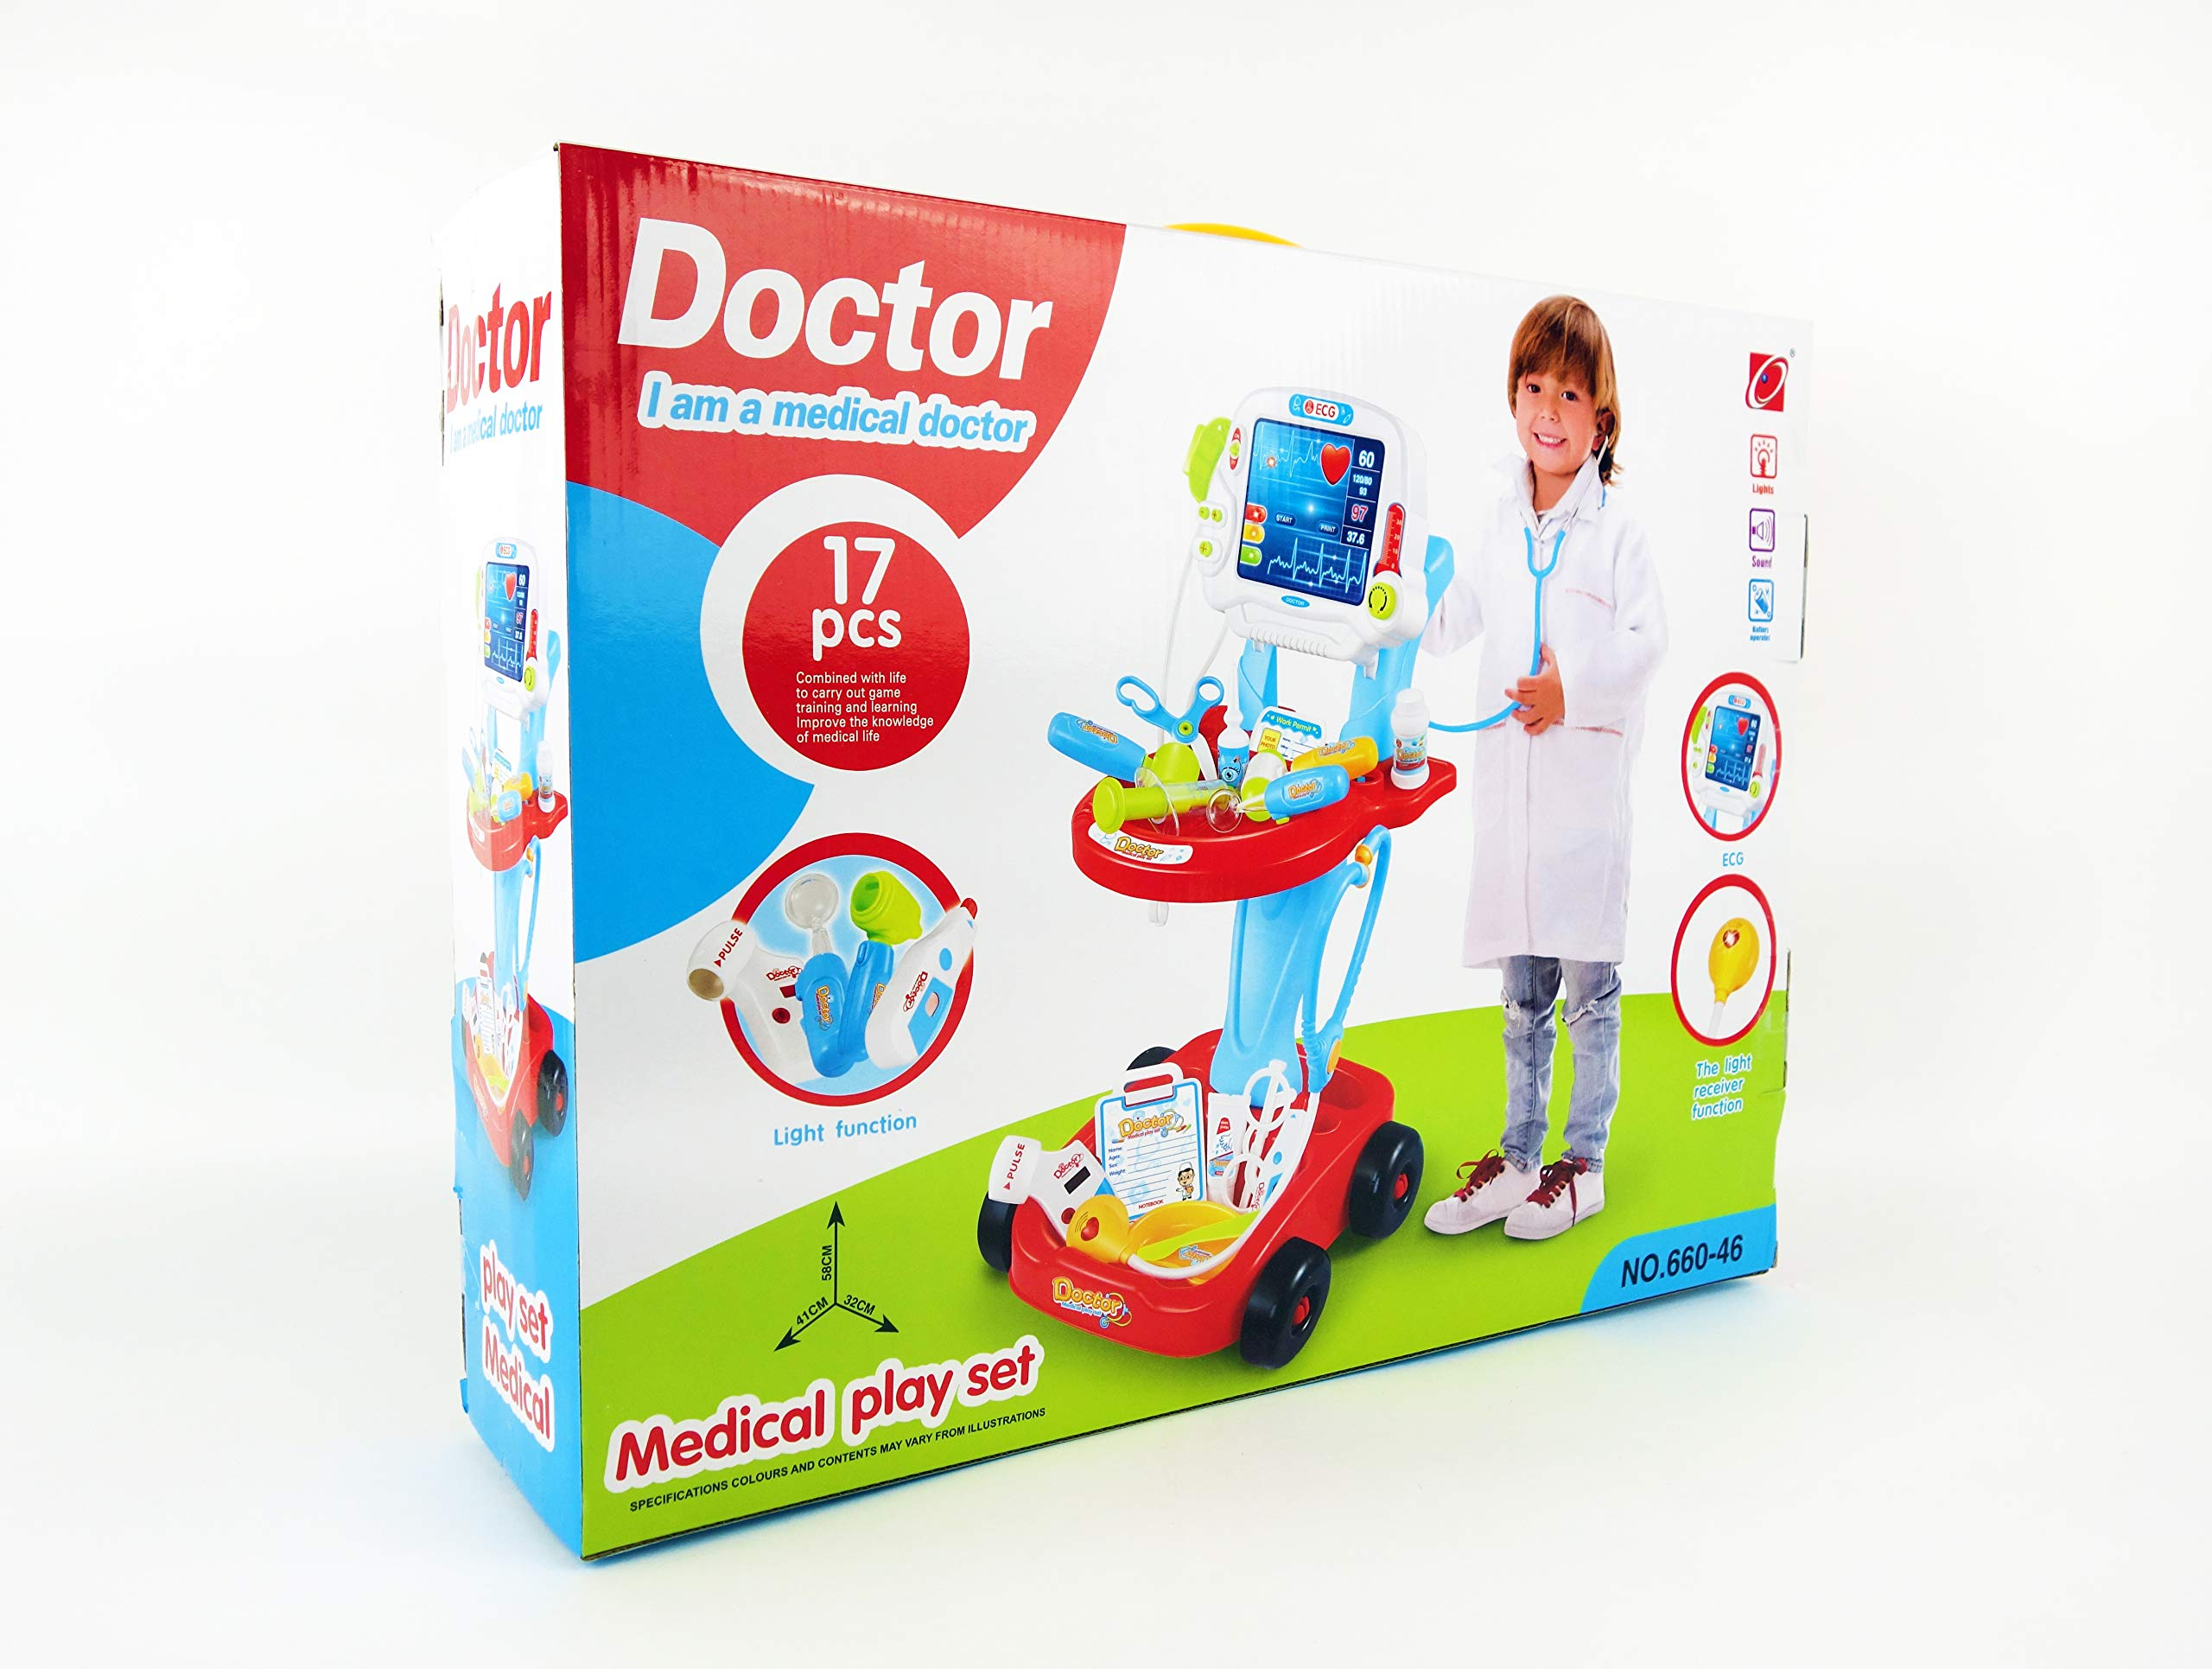 NBD Corp Kids Toy Portable Doctor Set, 17 Piece Set with Play Screen and Play Doctor Instruments by NBD Corp (Image #1)